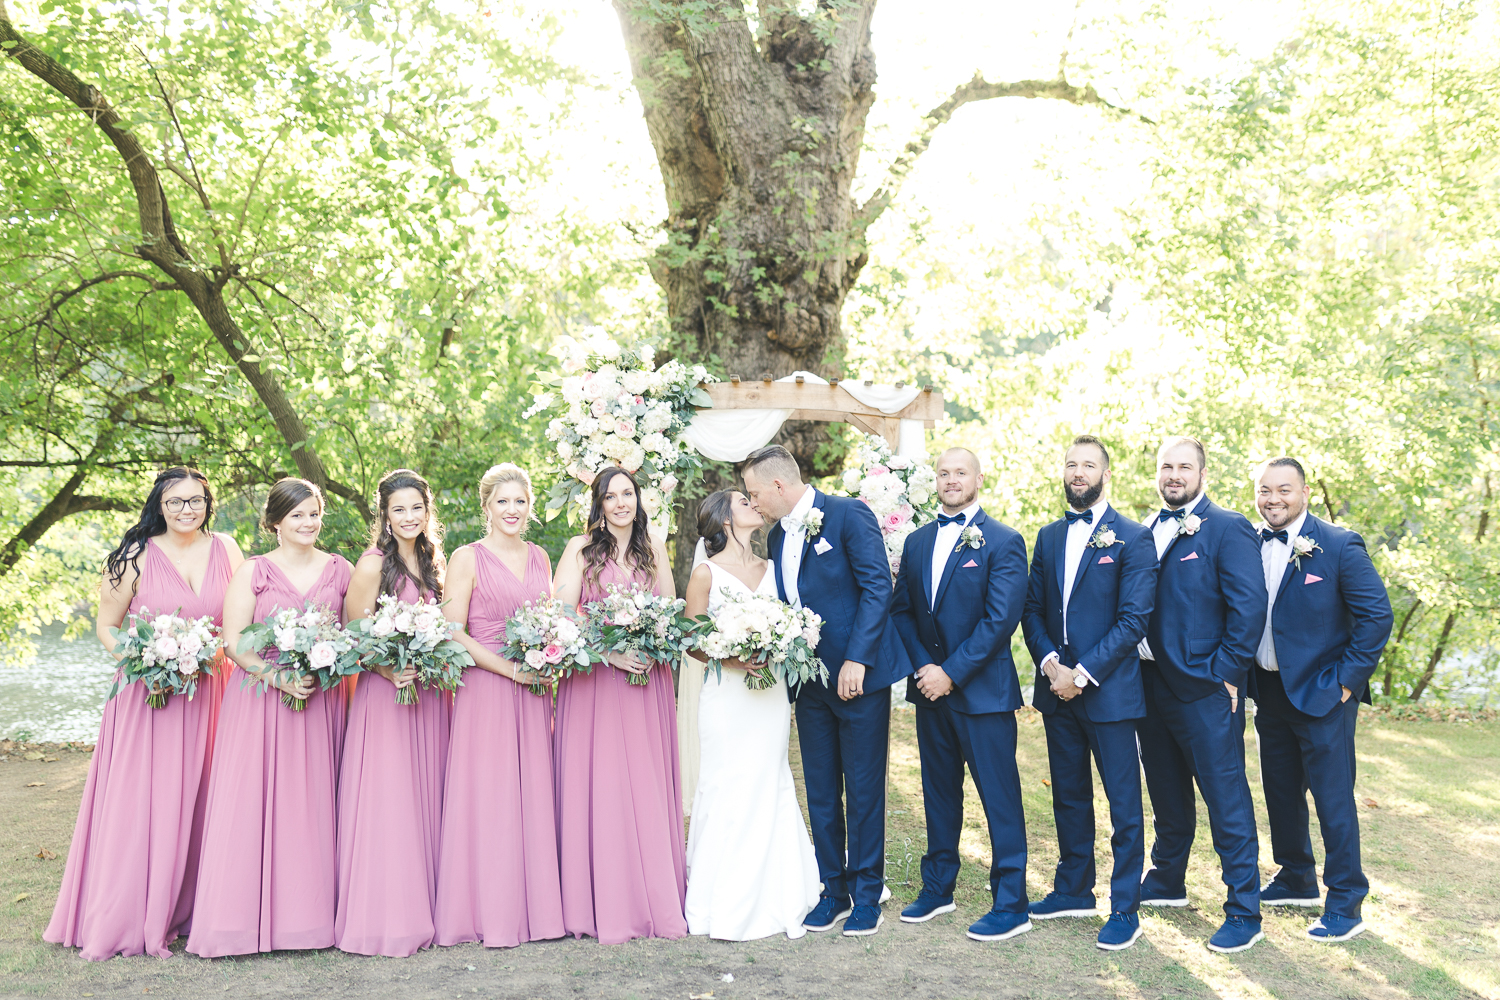 Bride and grooms party group photo